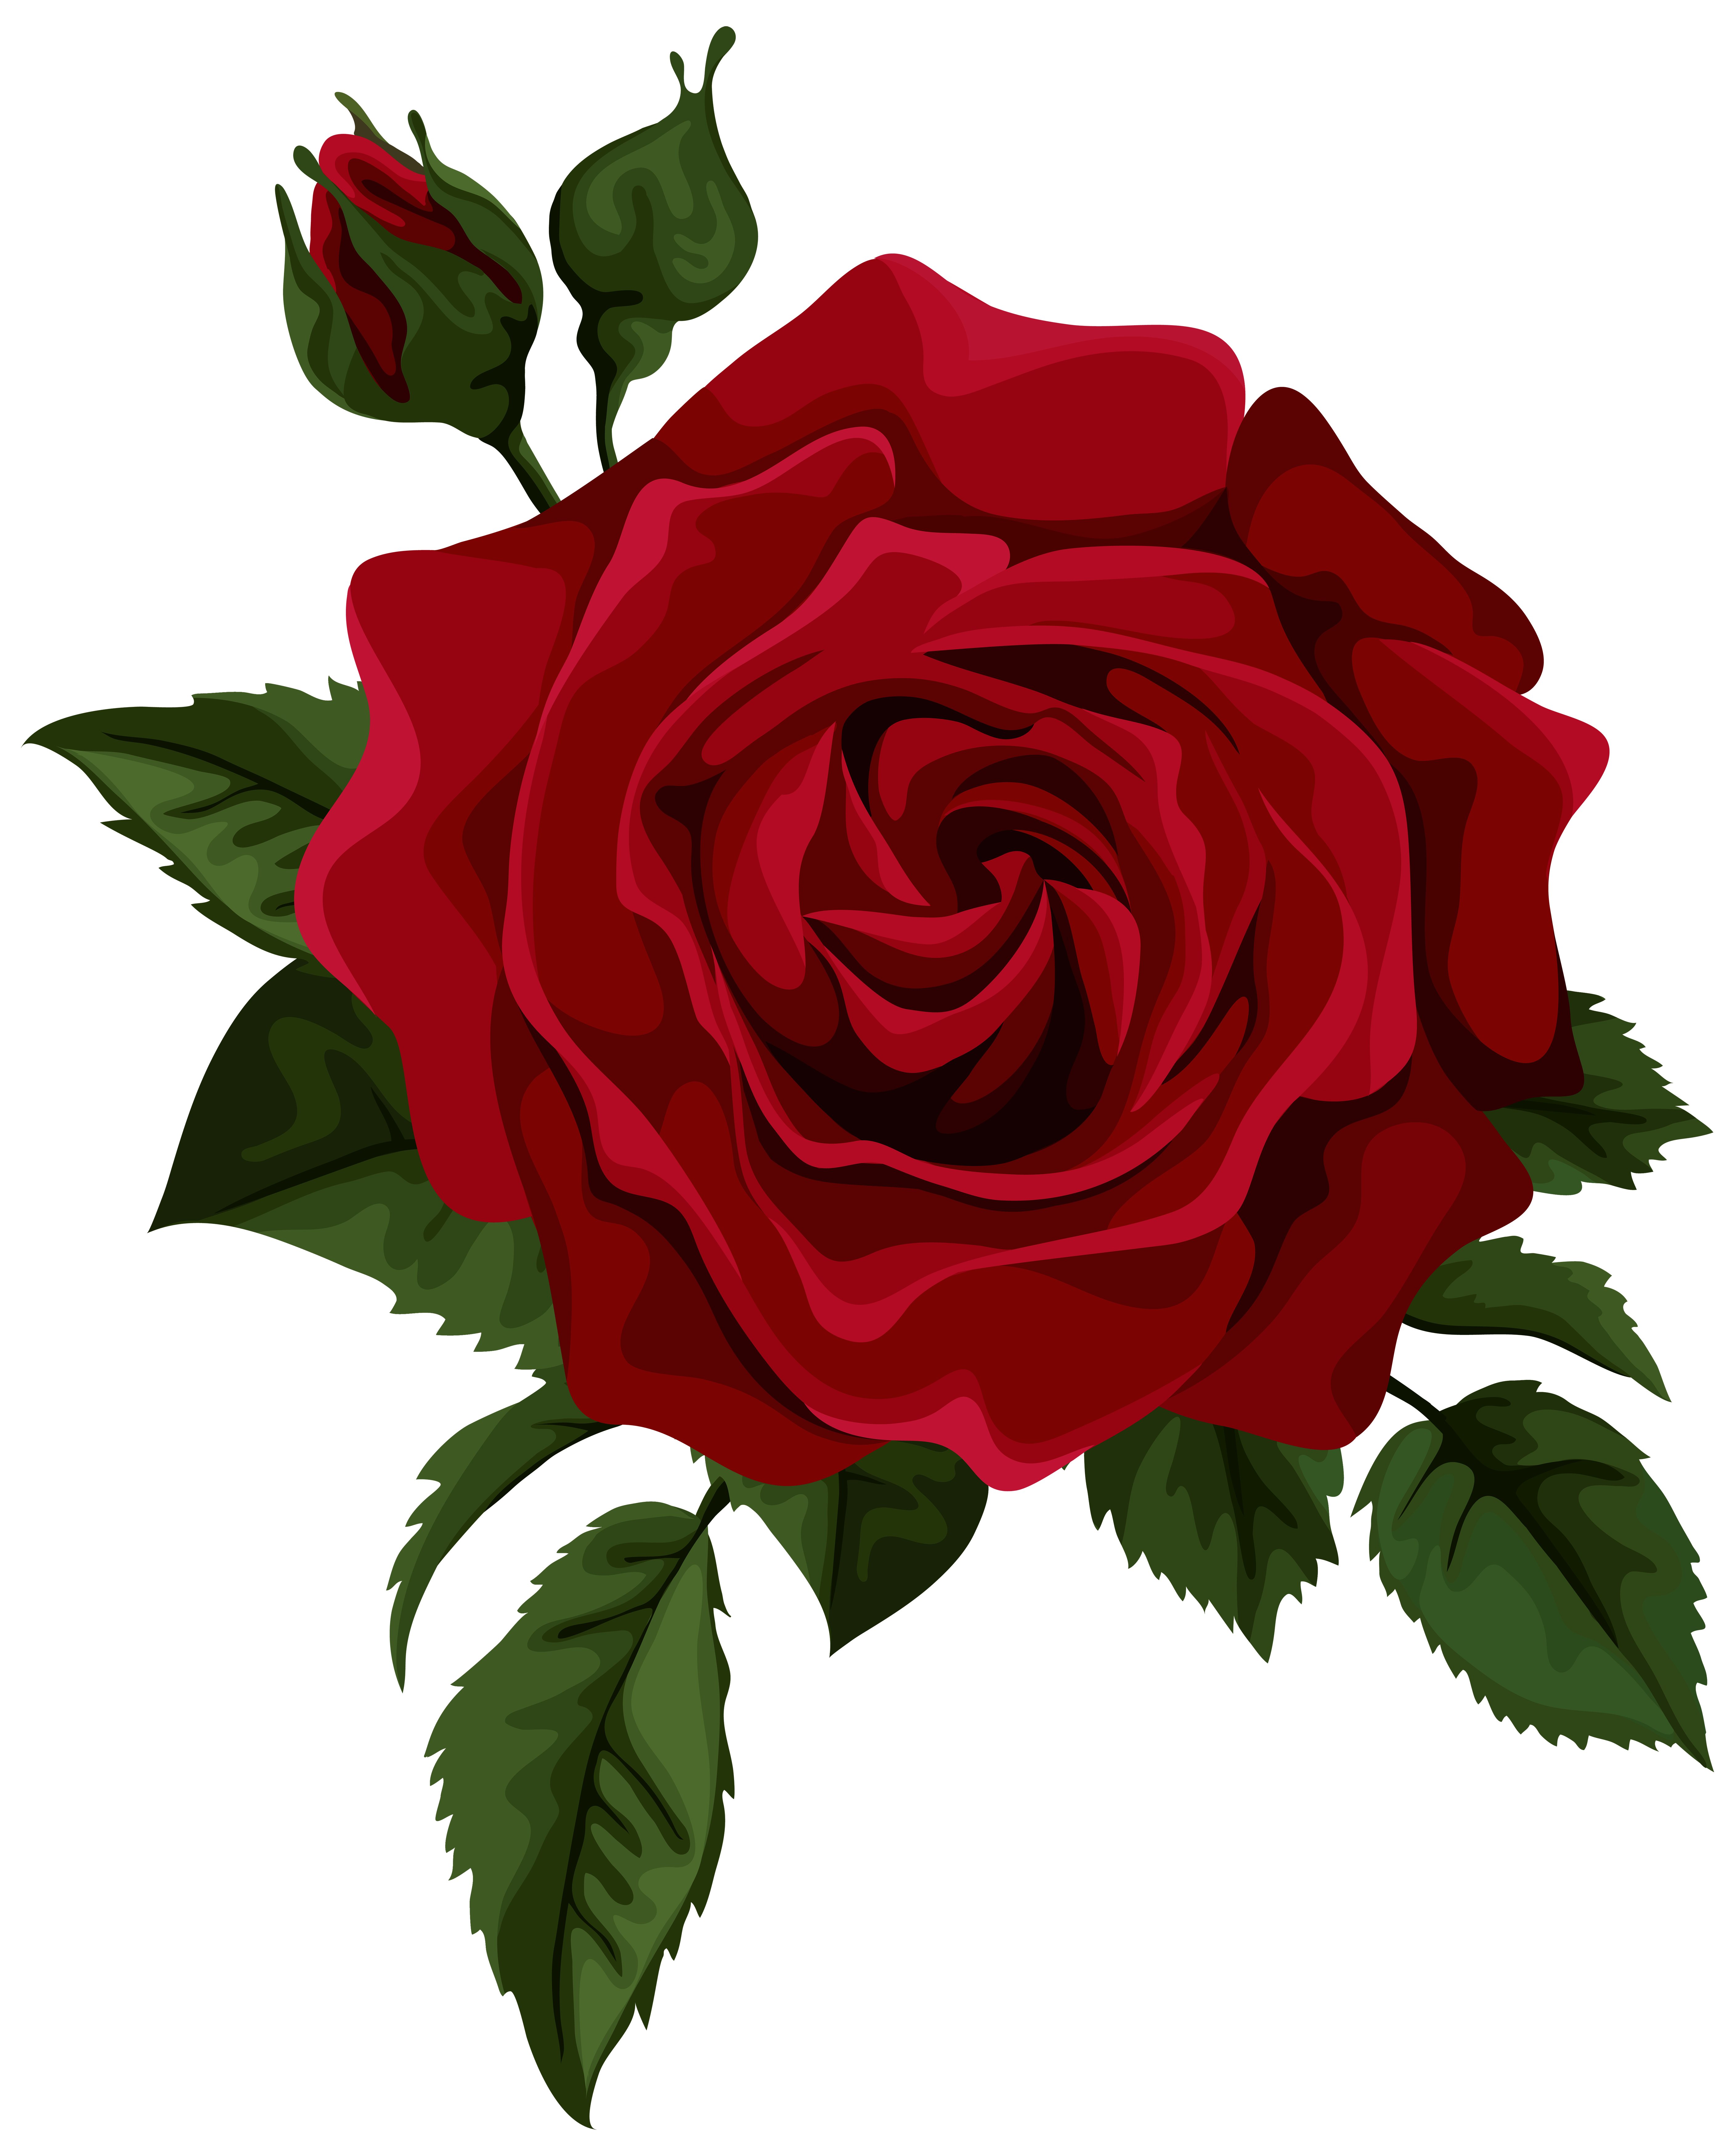 5632x7000 Red Rose With Bud Transparent Png Clip Art Pictureu200b Gallery